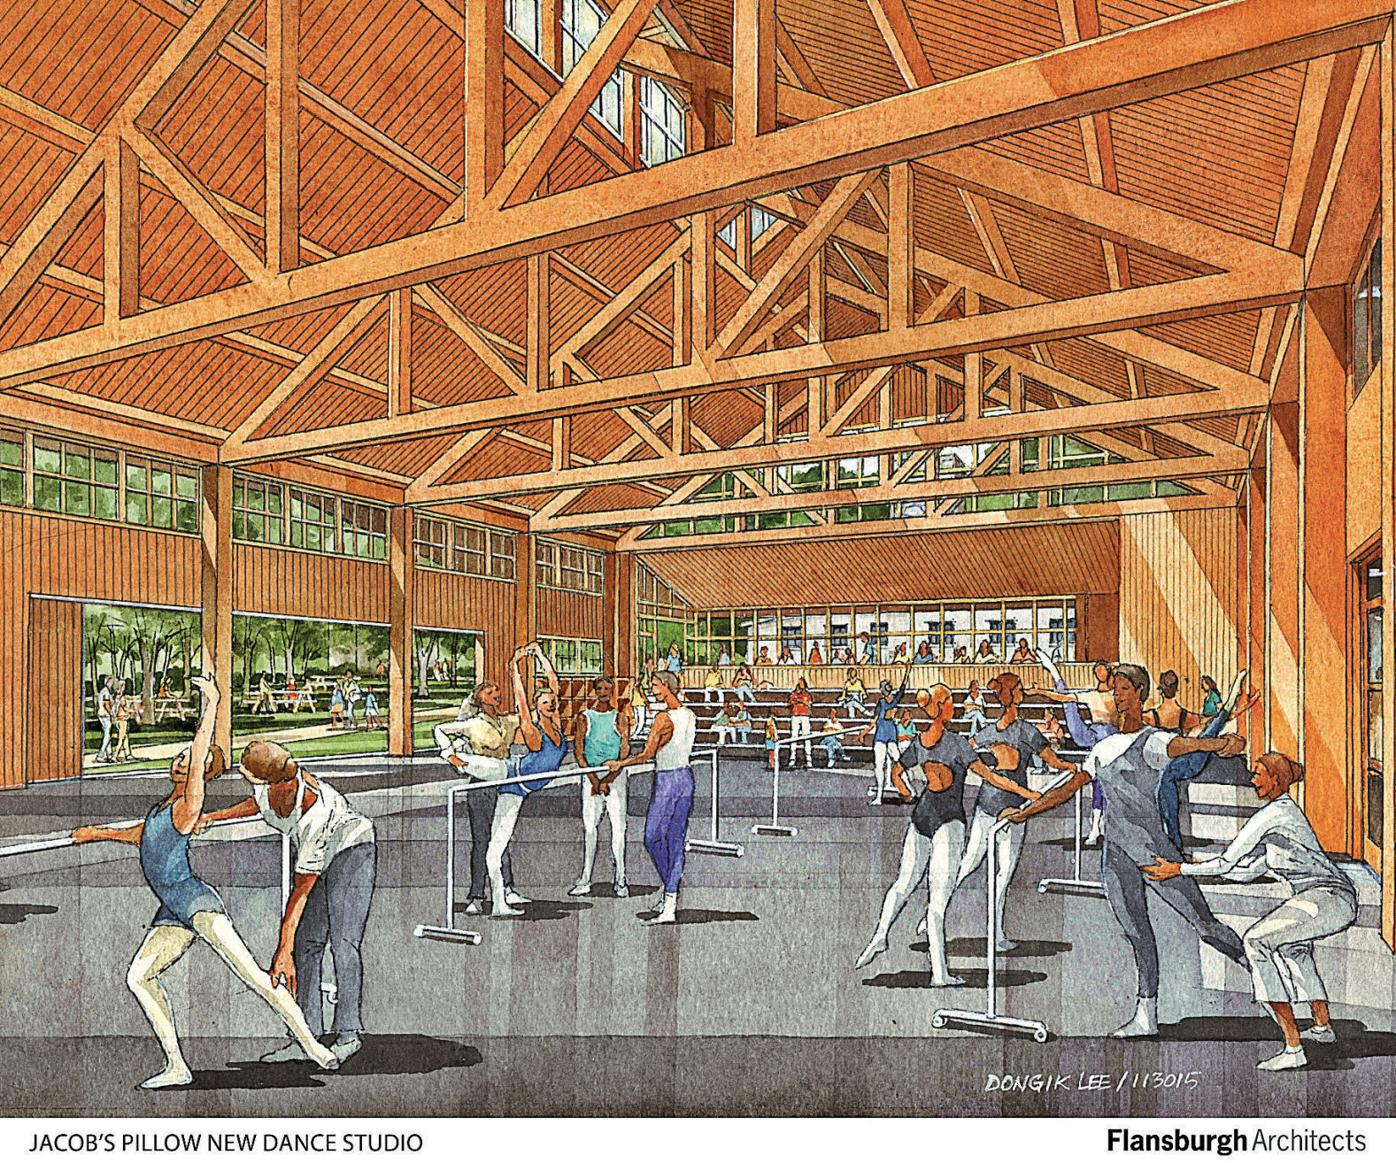 Jacob's Pillow launches five-year expansion: Vision '22